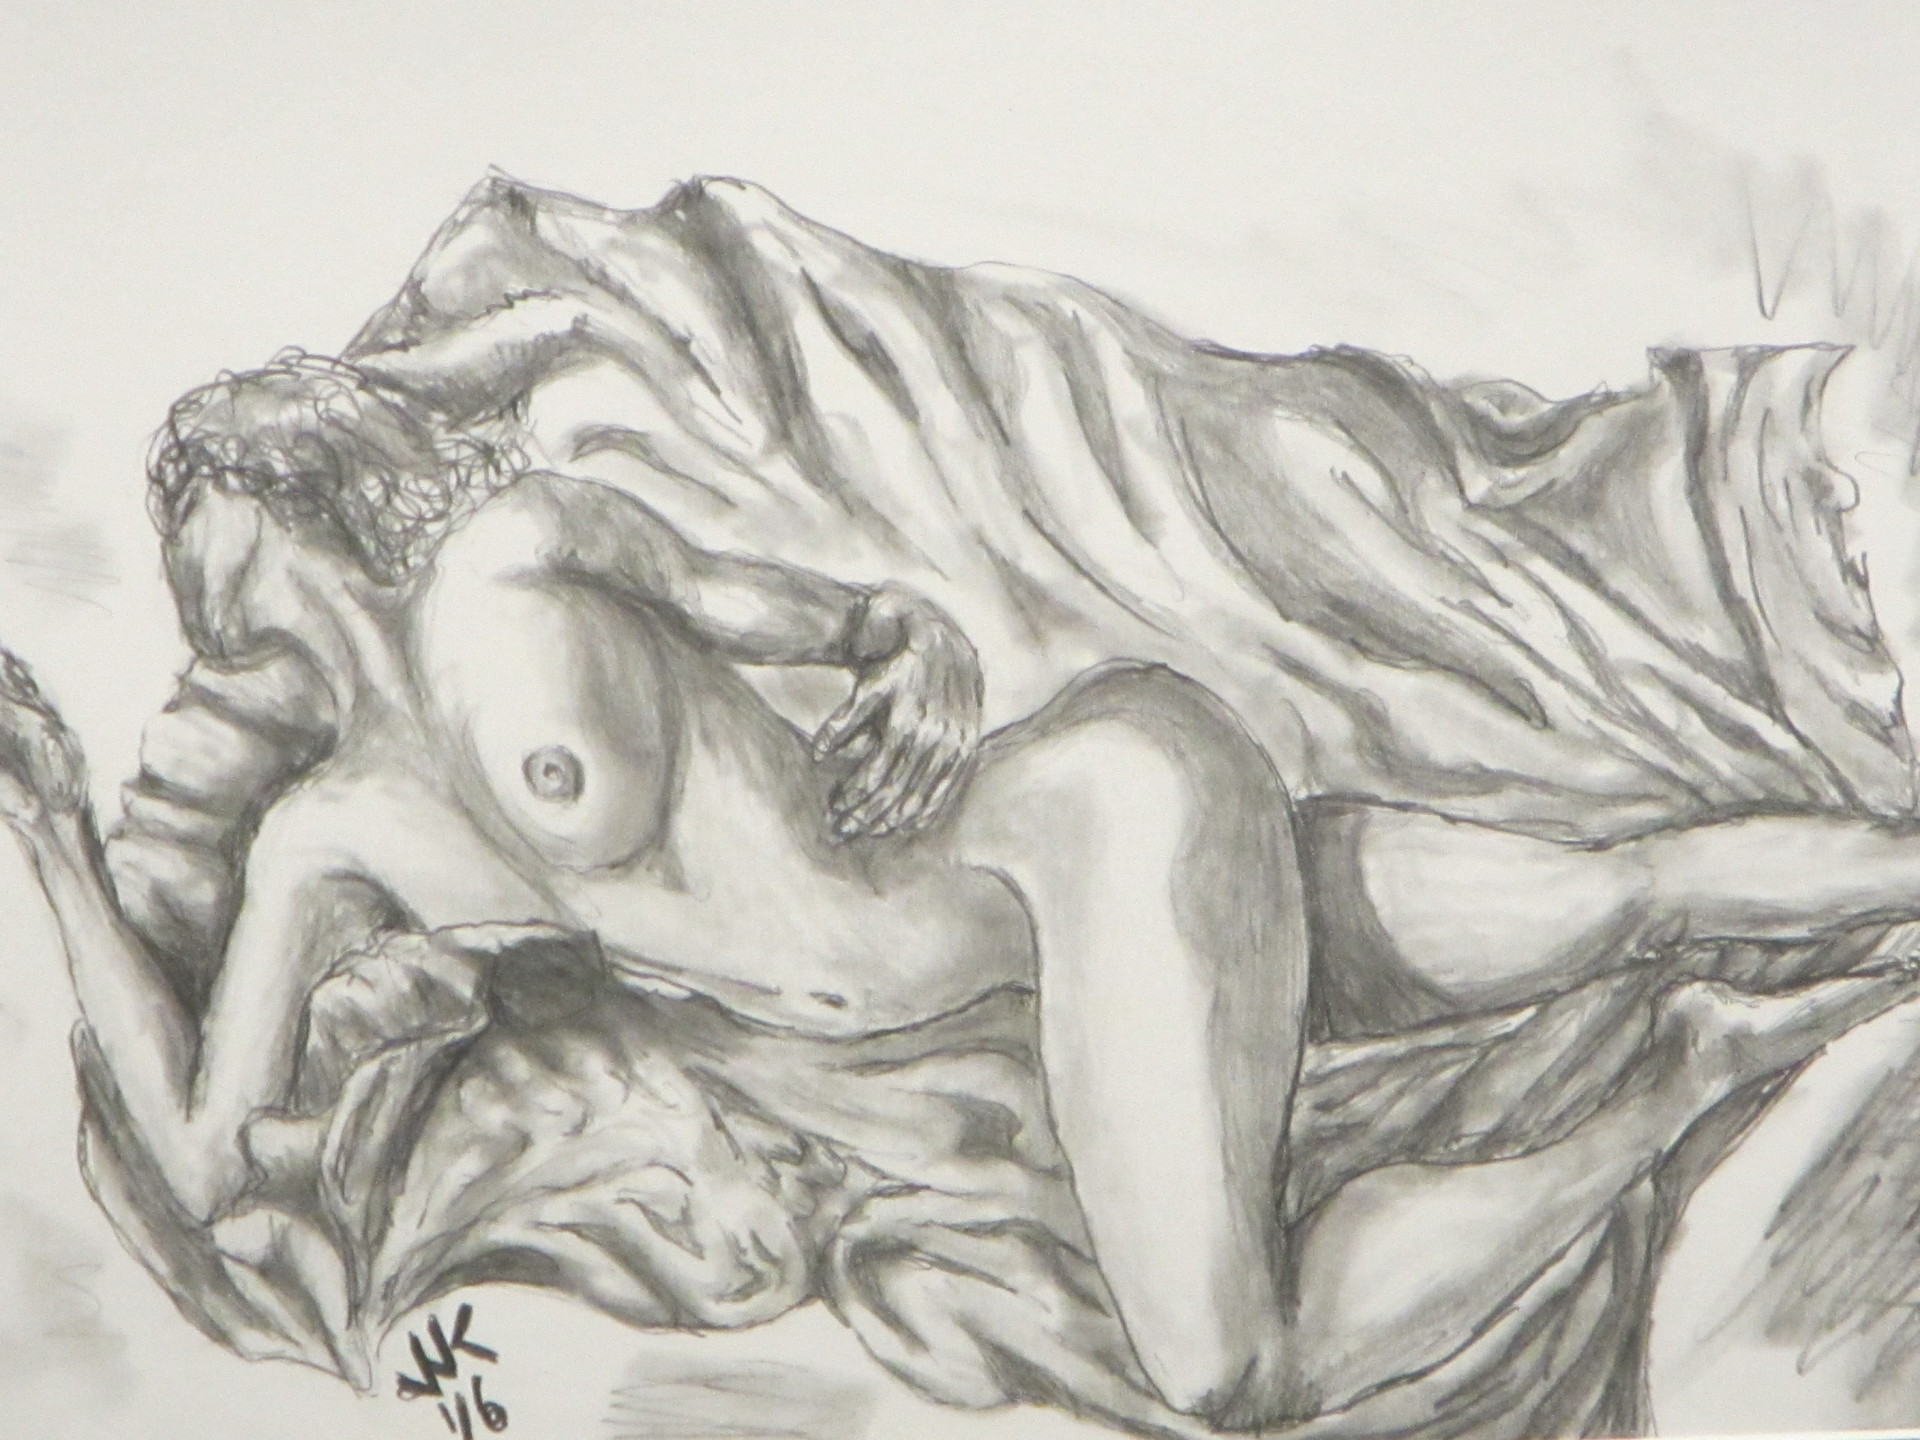 A nude woman lying on satin.